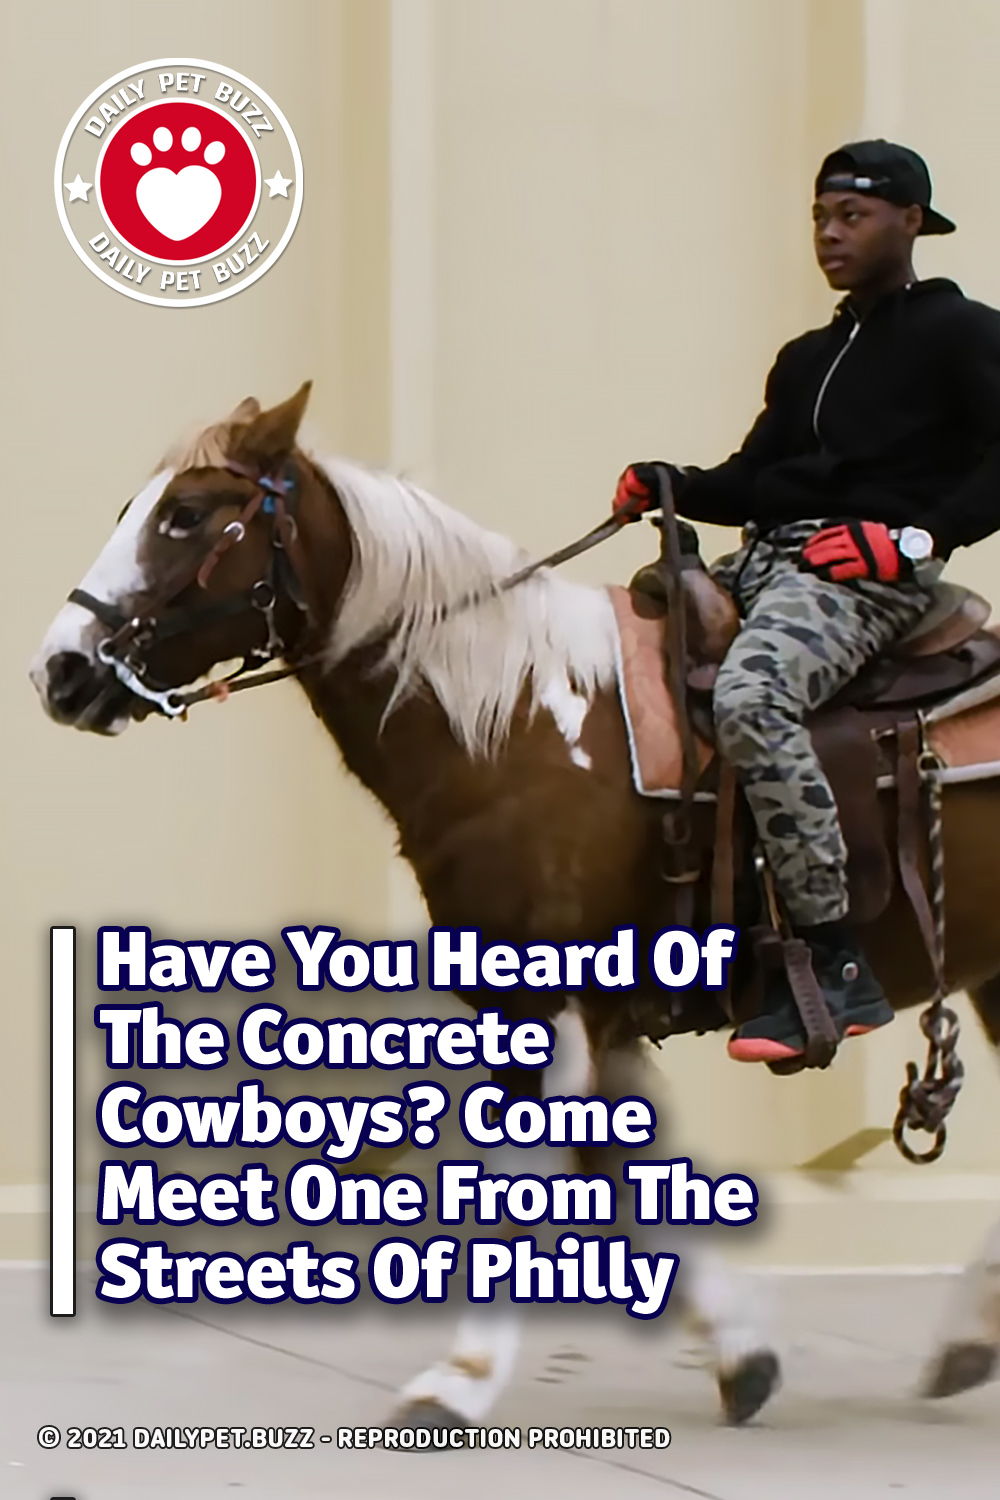 Have You Heard Of The Concrete Cowboys? Come Meet One From The Streets Of Philly